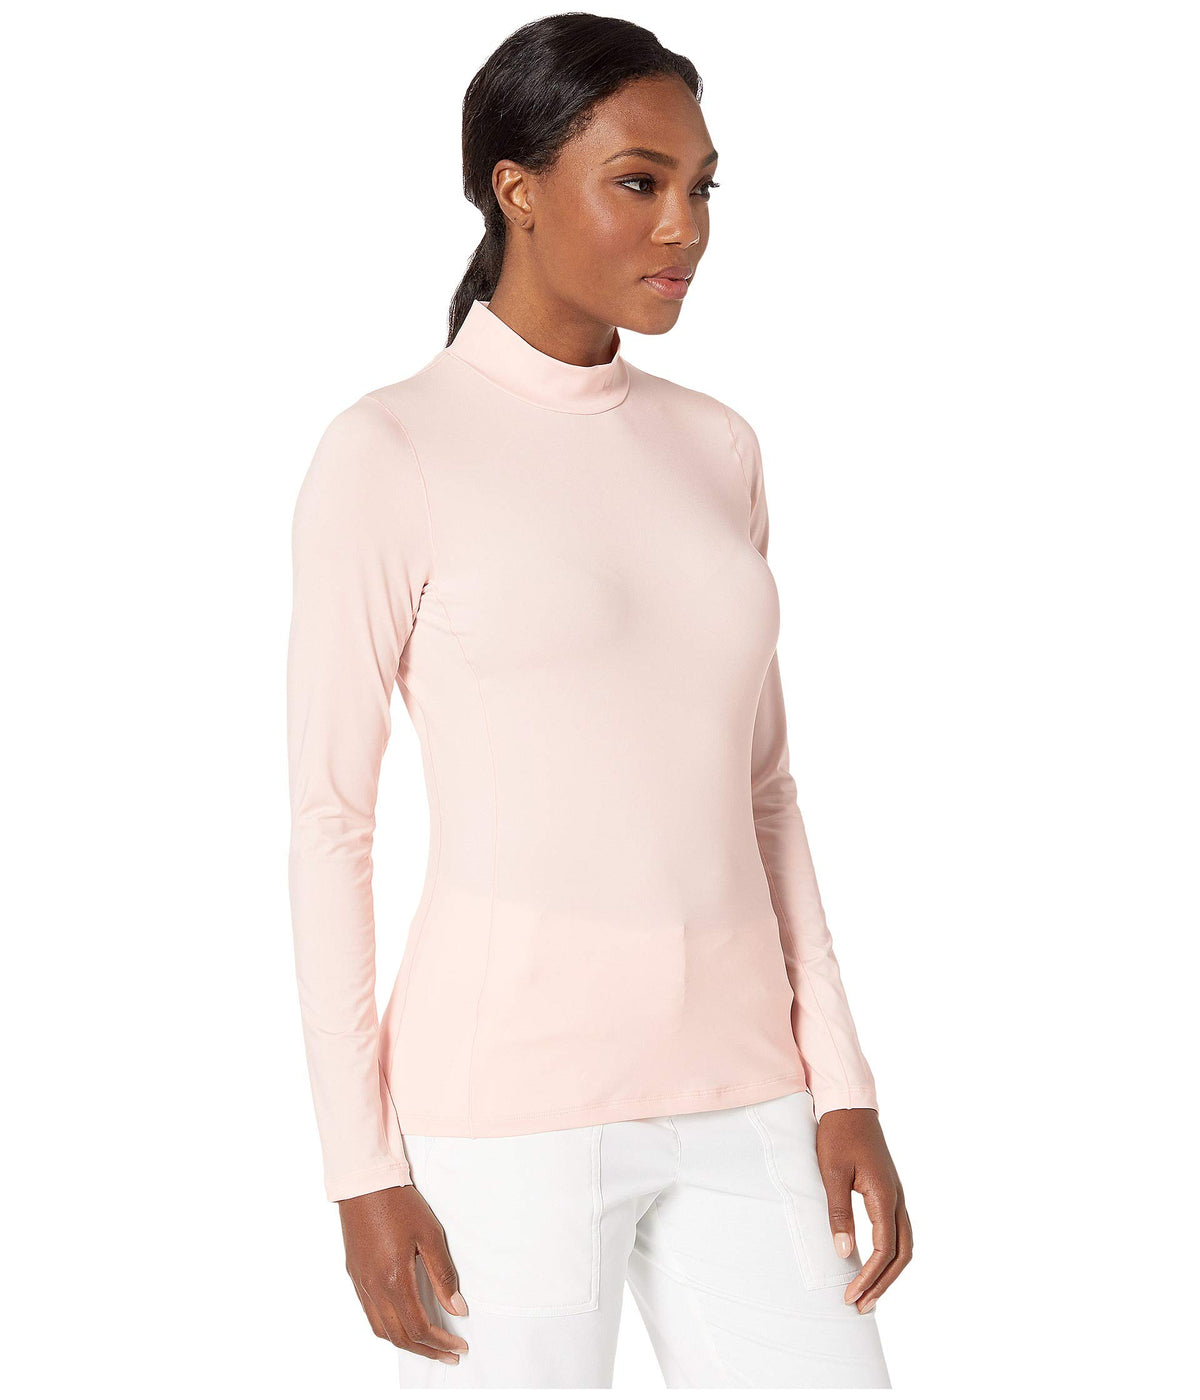 Dry-Fit UV Long-Sleeve Golf Top